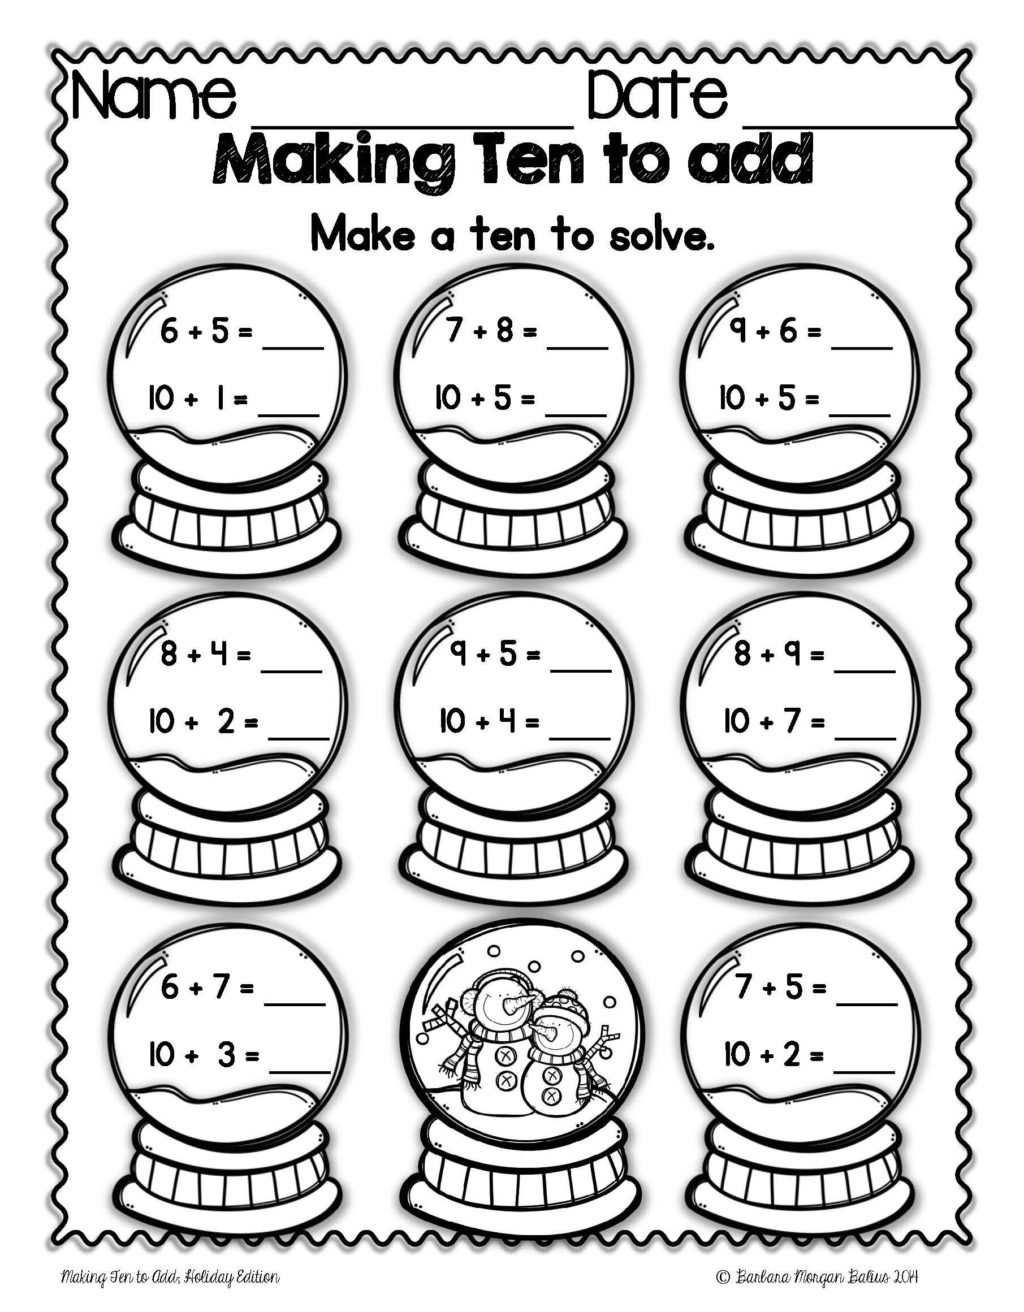 Worksheet ~ Halloween Math Worksheets 2Nd Gradeun Coloringor